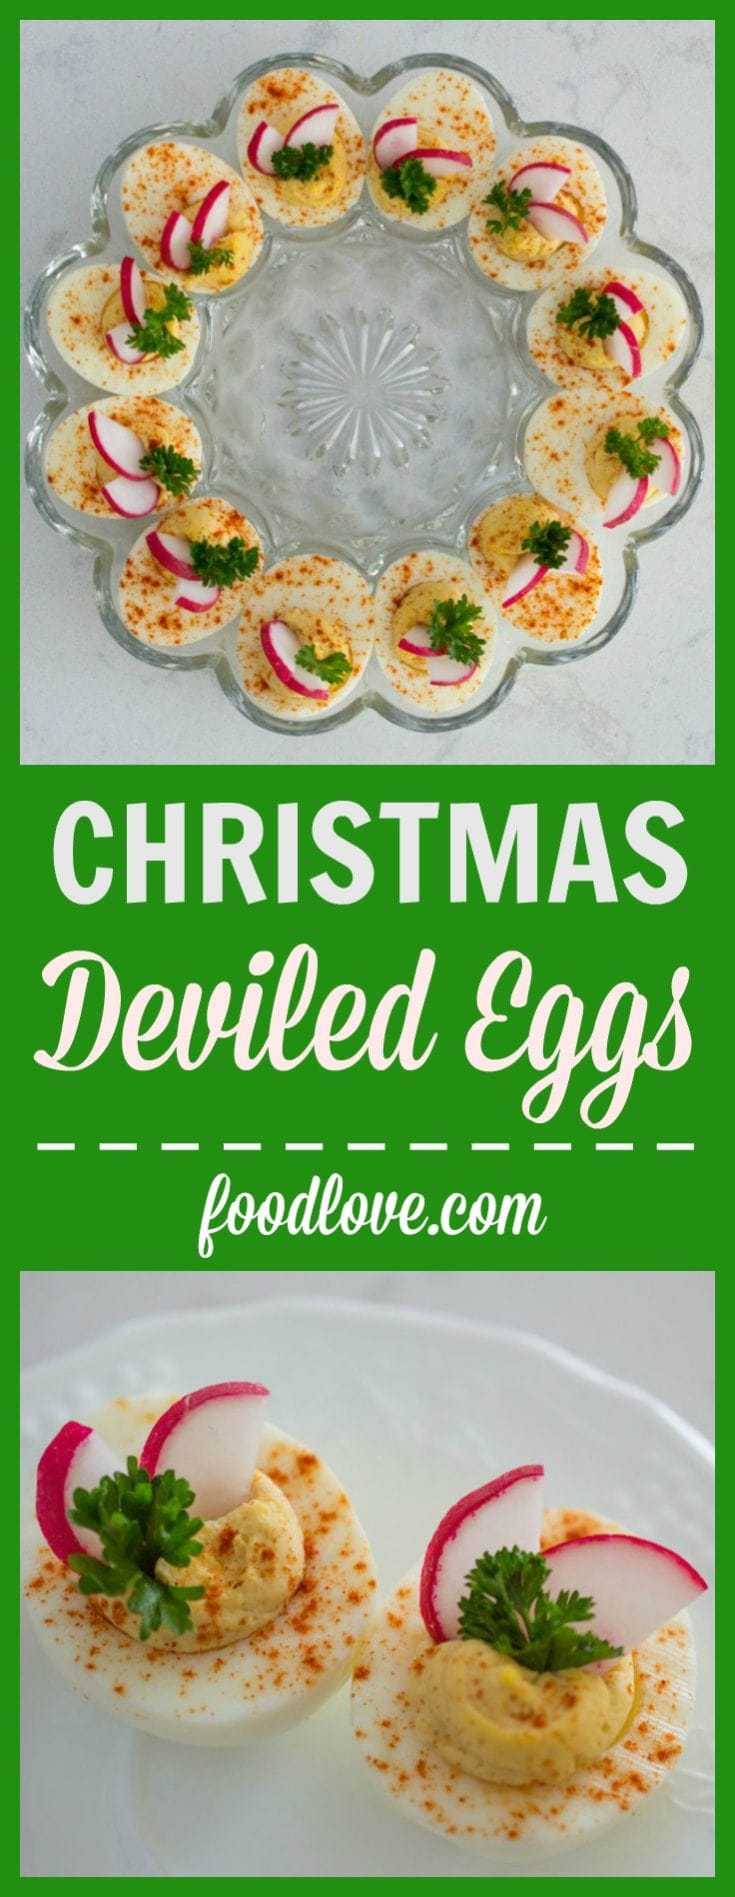 Deviled eggs get dressed up for the holidays with red and green garnishes. #deviledeggs #christmasrecipes #holidayrecipes #appetizers #holidayappetizers #christmasappetizers #lowcarb #lowcarbappetizers #glutenfree #partyfood #foodlove